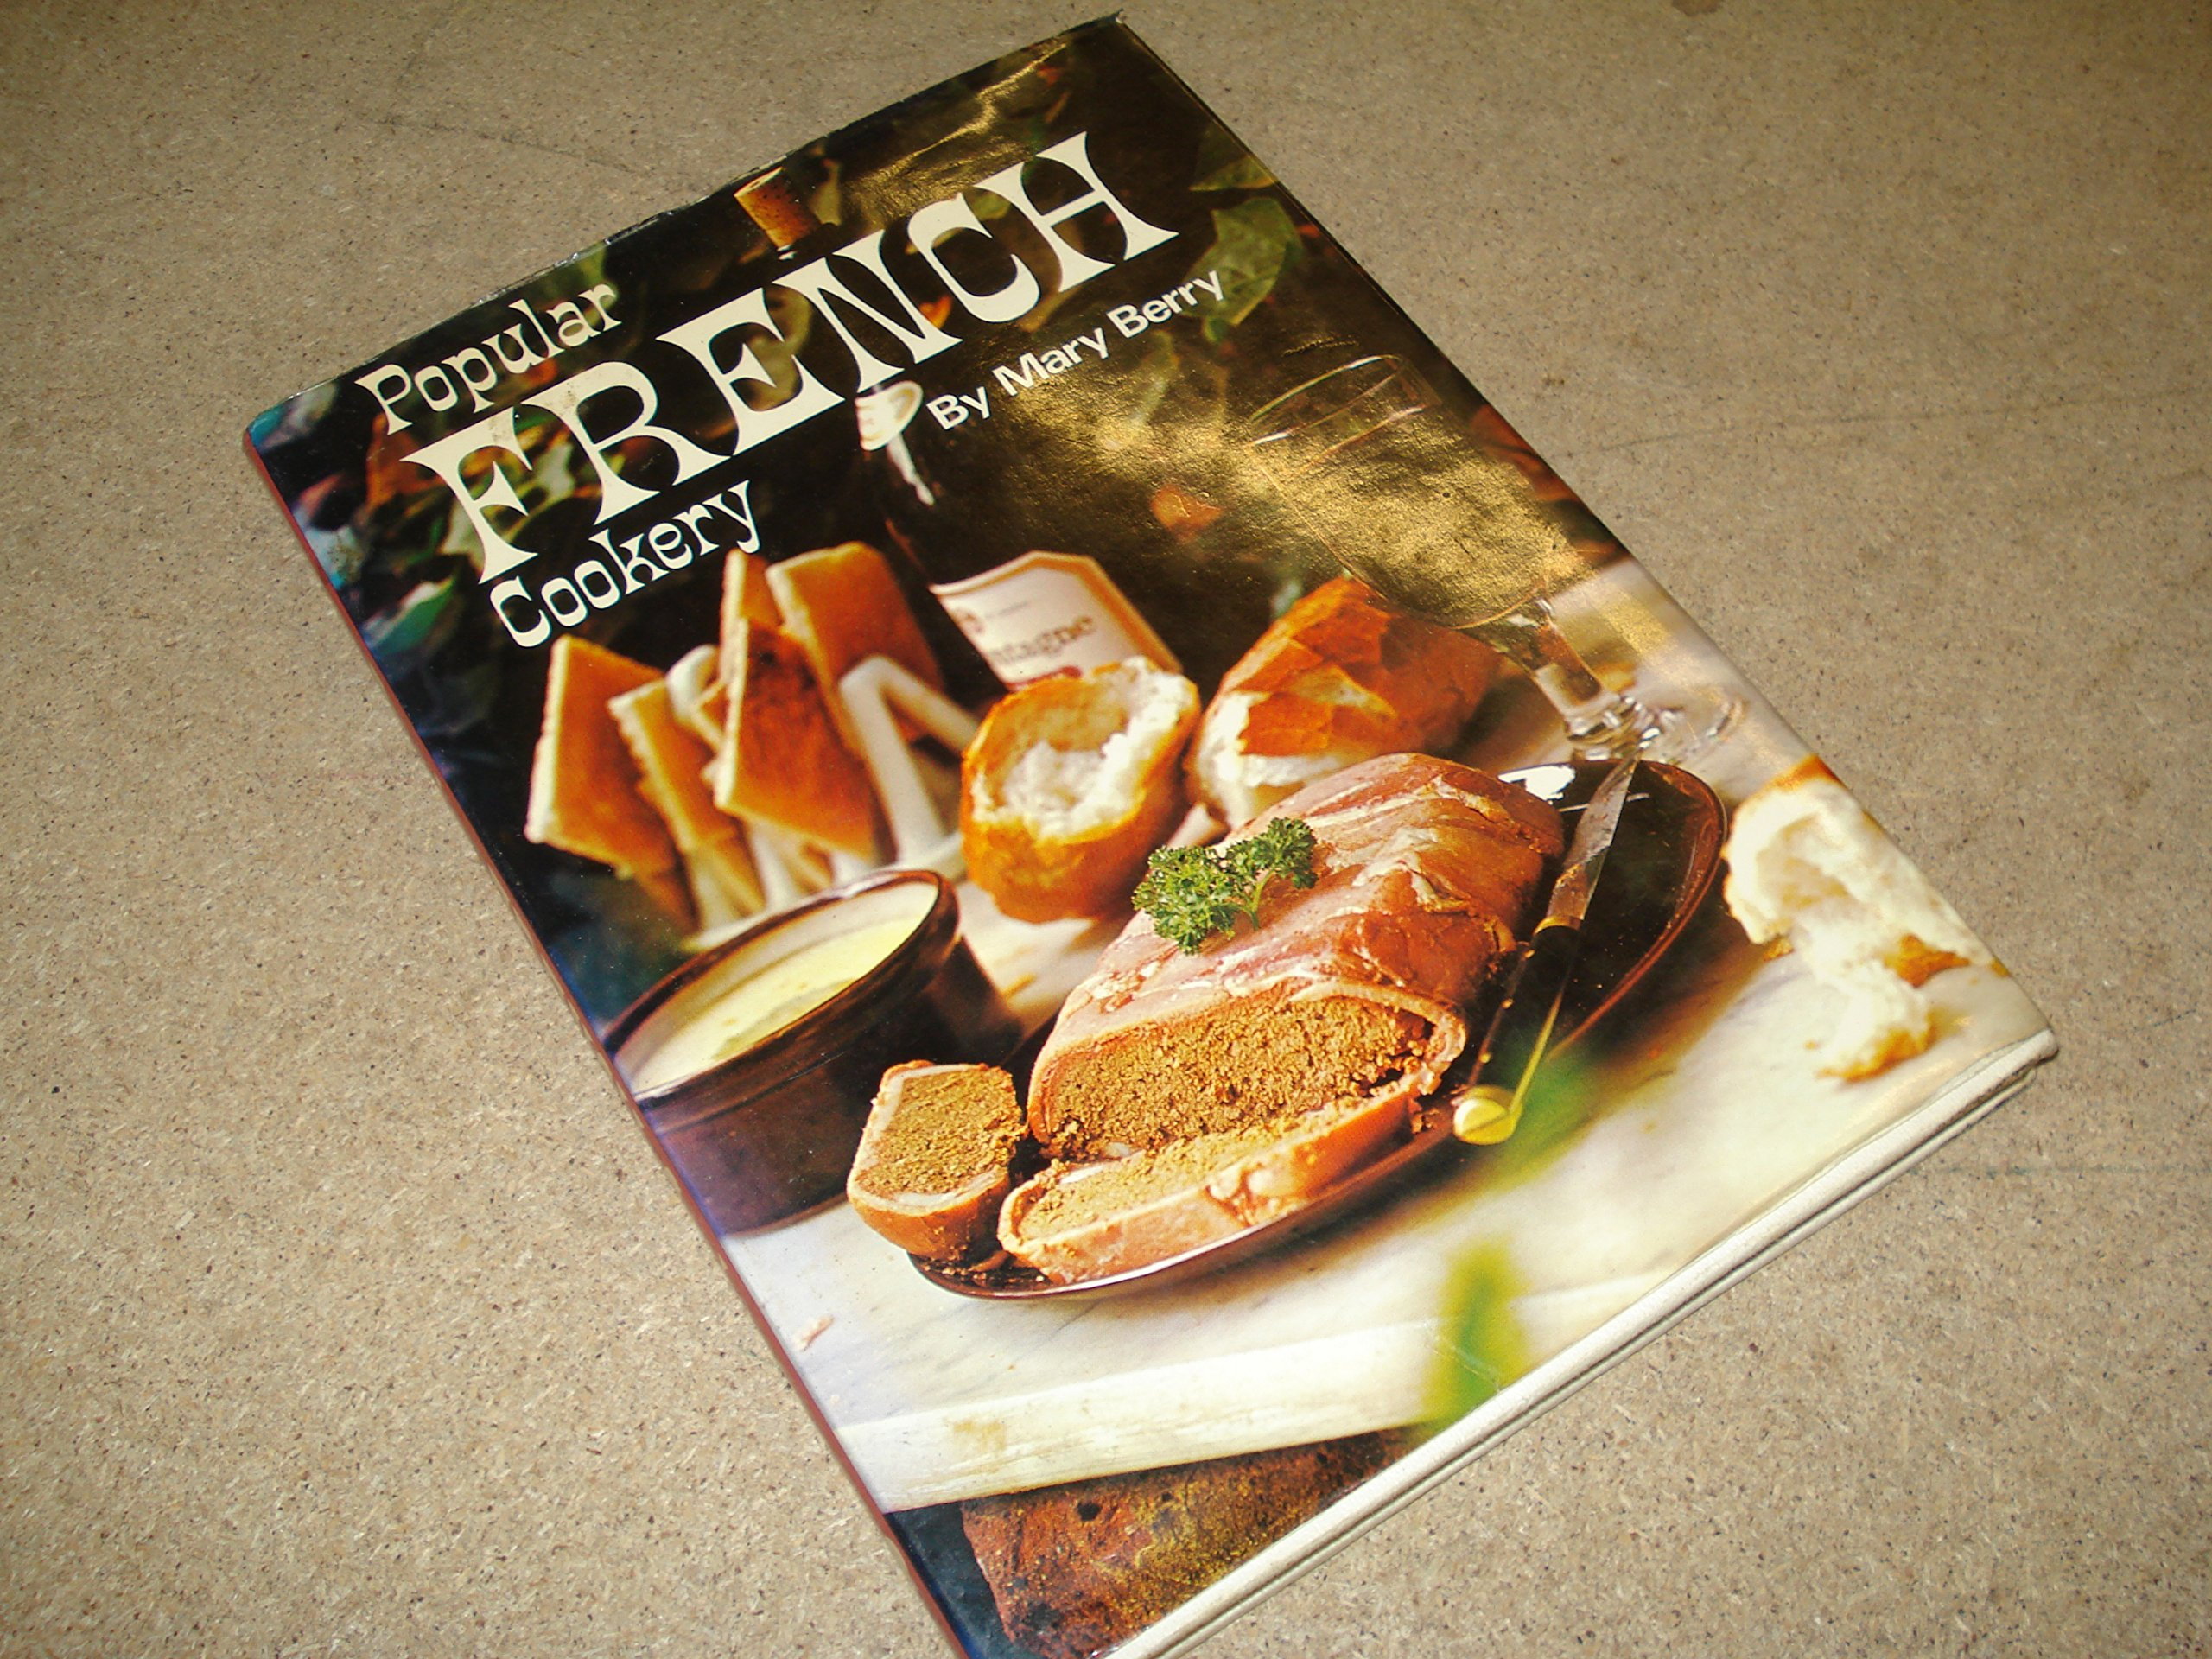 Popular french cookery mary berry 9780706400748 amazon books fandeluxe Images